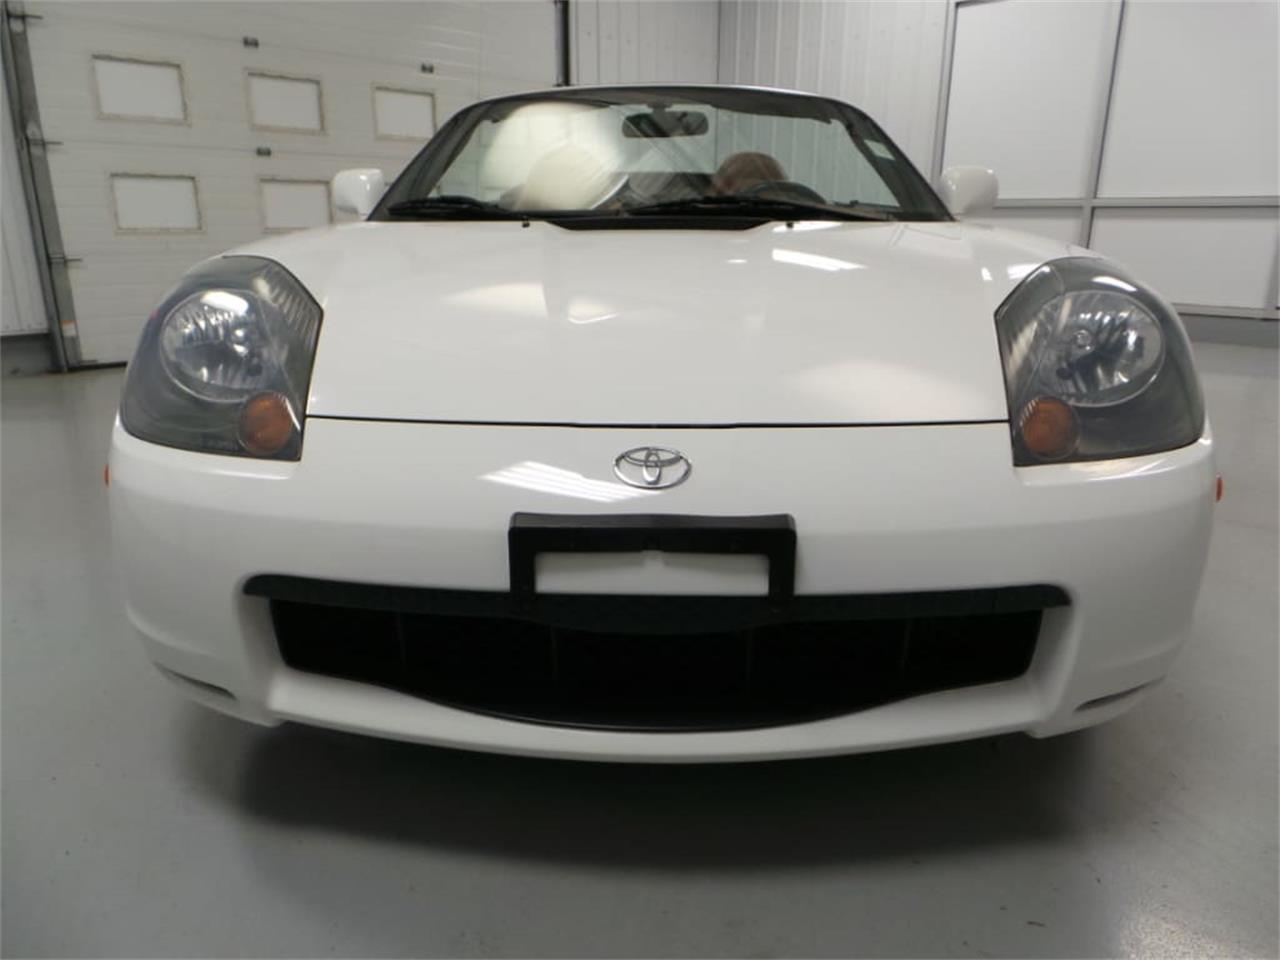 Large Picture of '01 Toyota MR2 Spyder - $13,908.00 Offered by Duncan Imports & Classic Cars - JL89